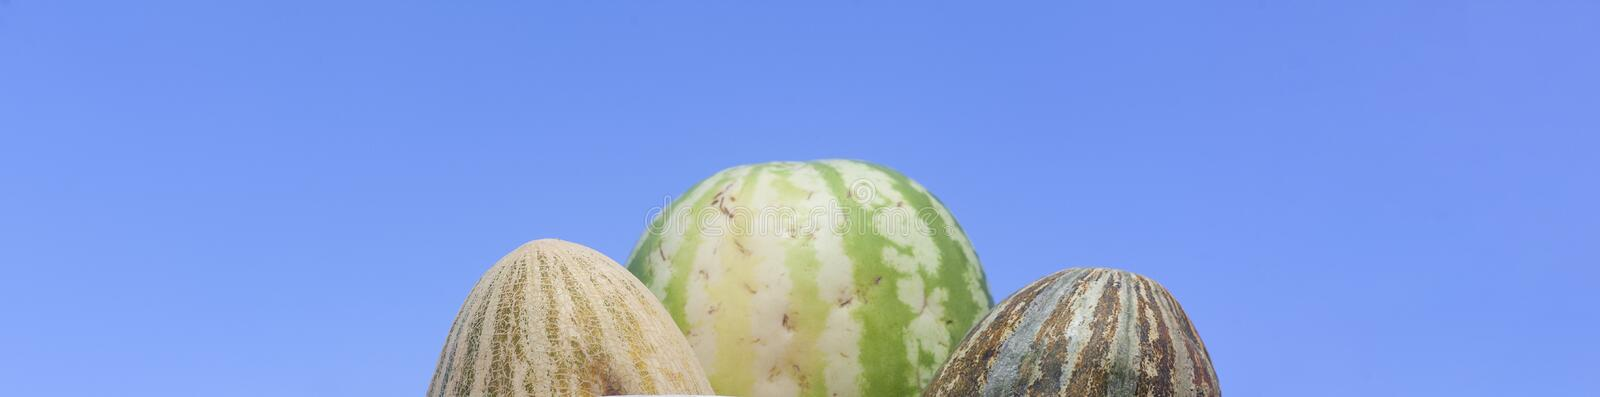 Group of fresh ripe yellow sweet melons and watermelons. Cantaloupe melons for sale in organic farm. Melons for sale in organic farm stock photography